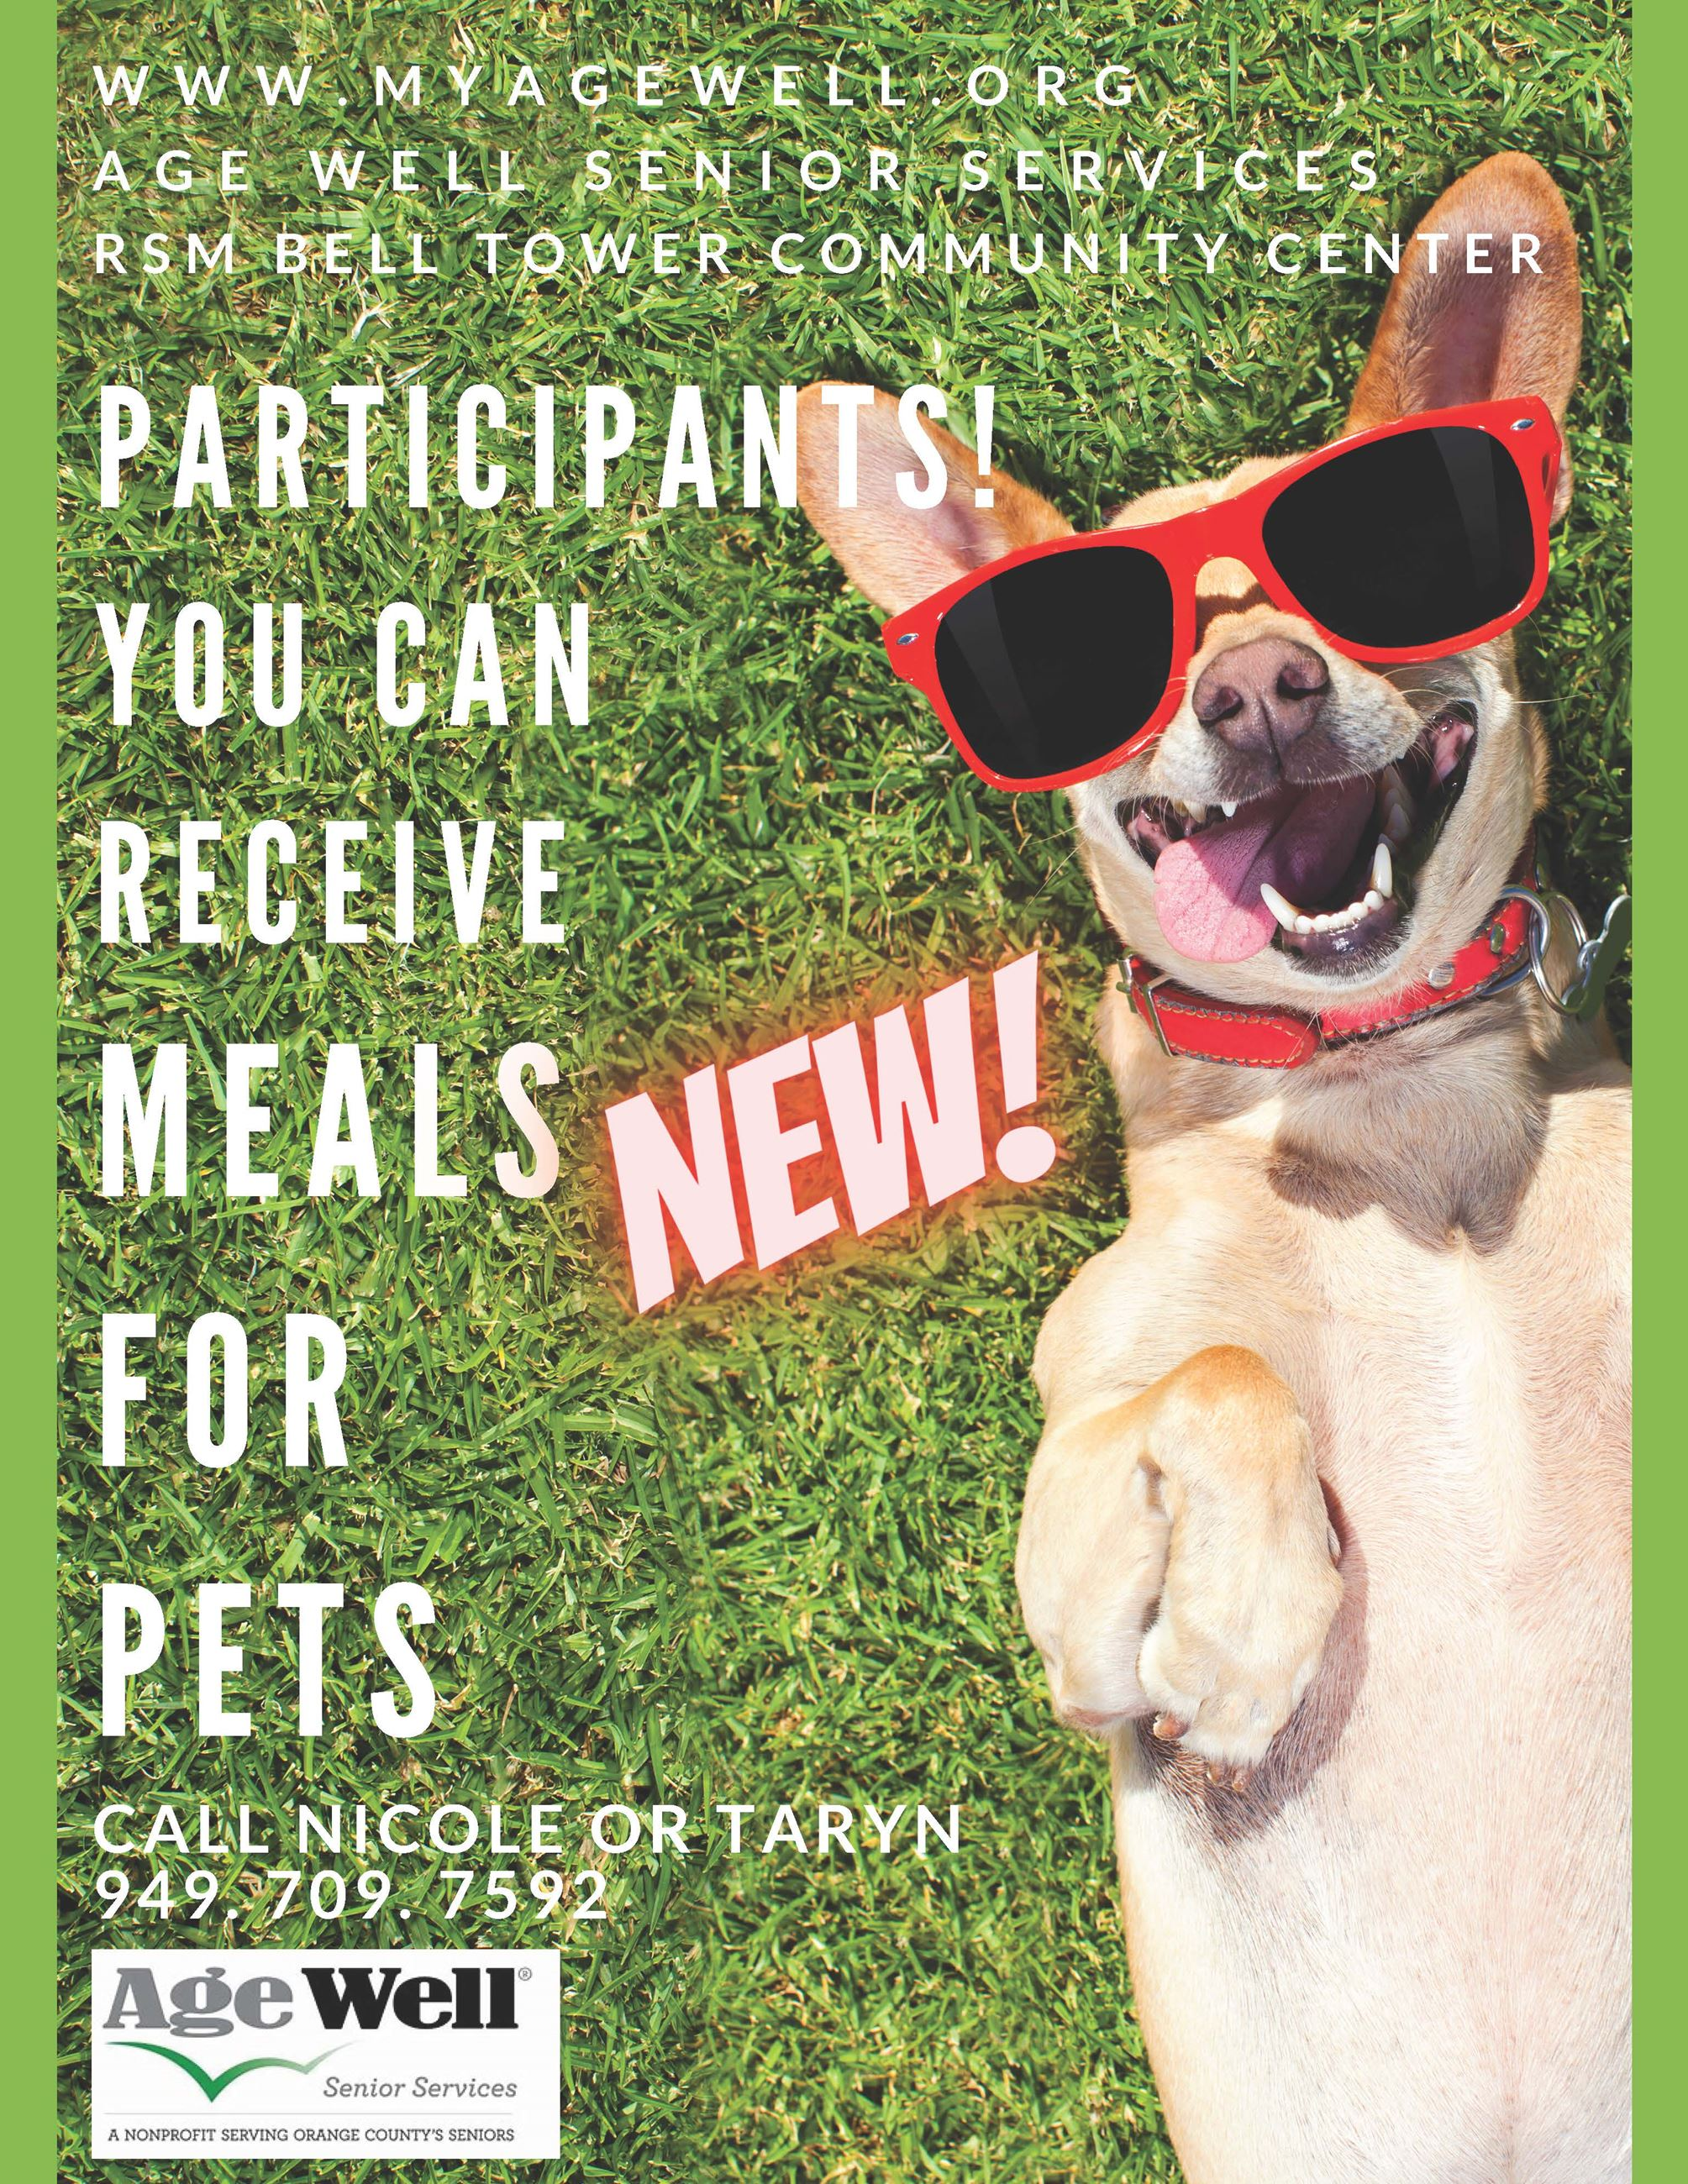 Meals on Wheels for Pets_RSM